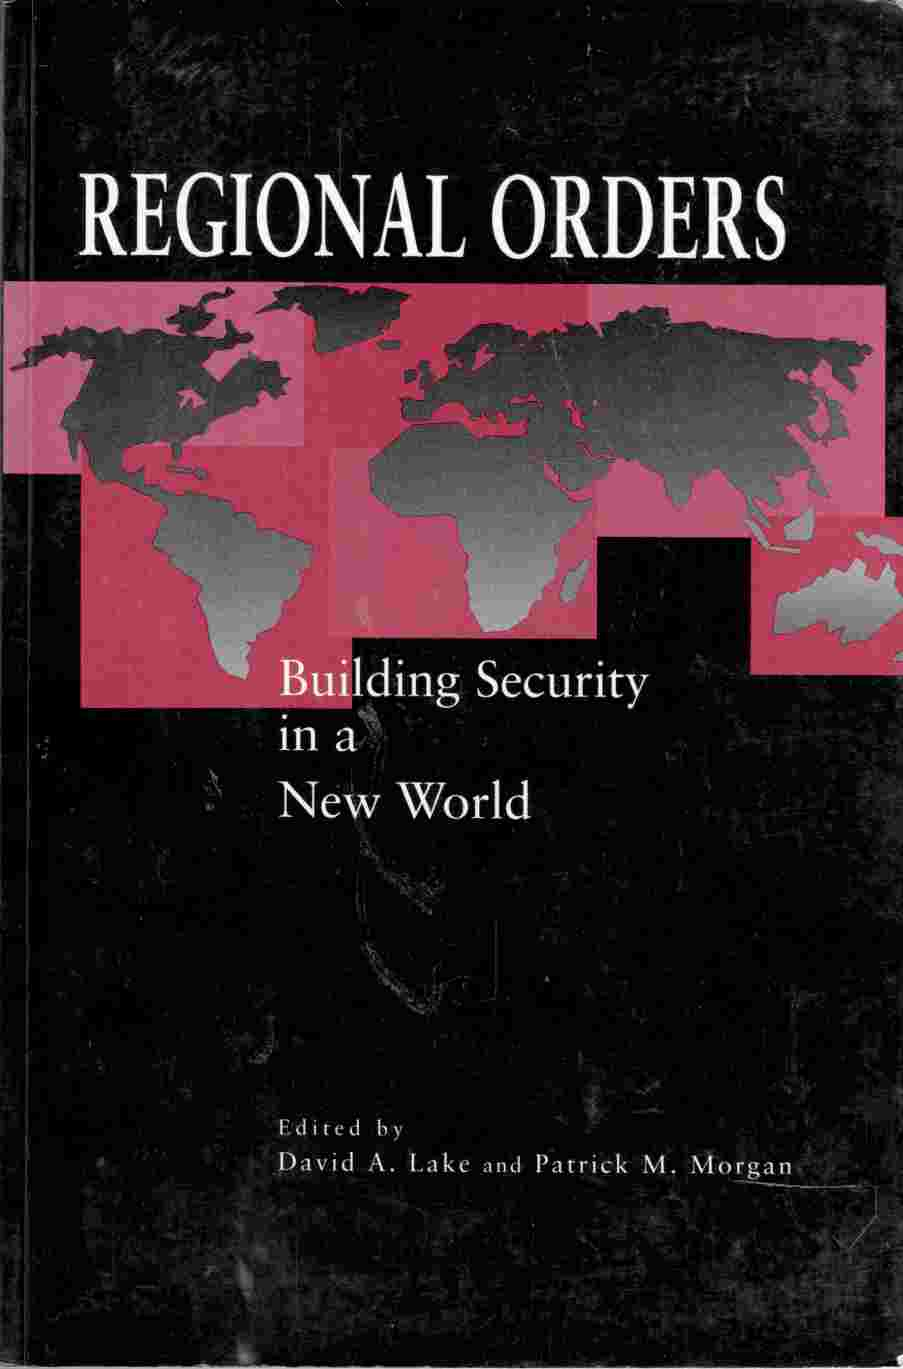 Image for Regional Orders Building Security in a New World